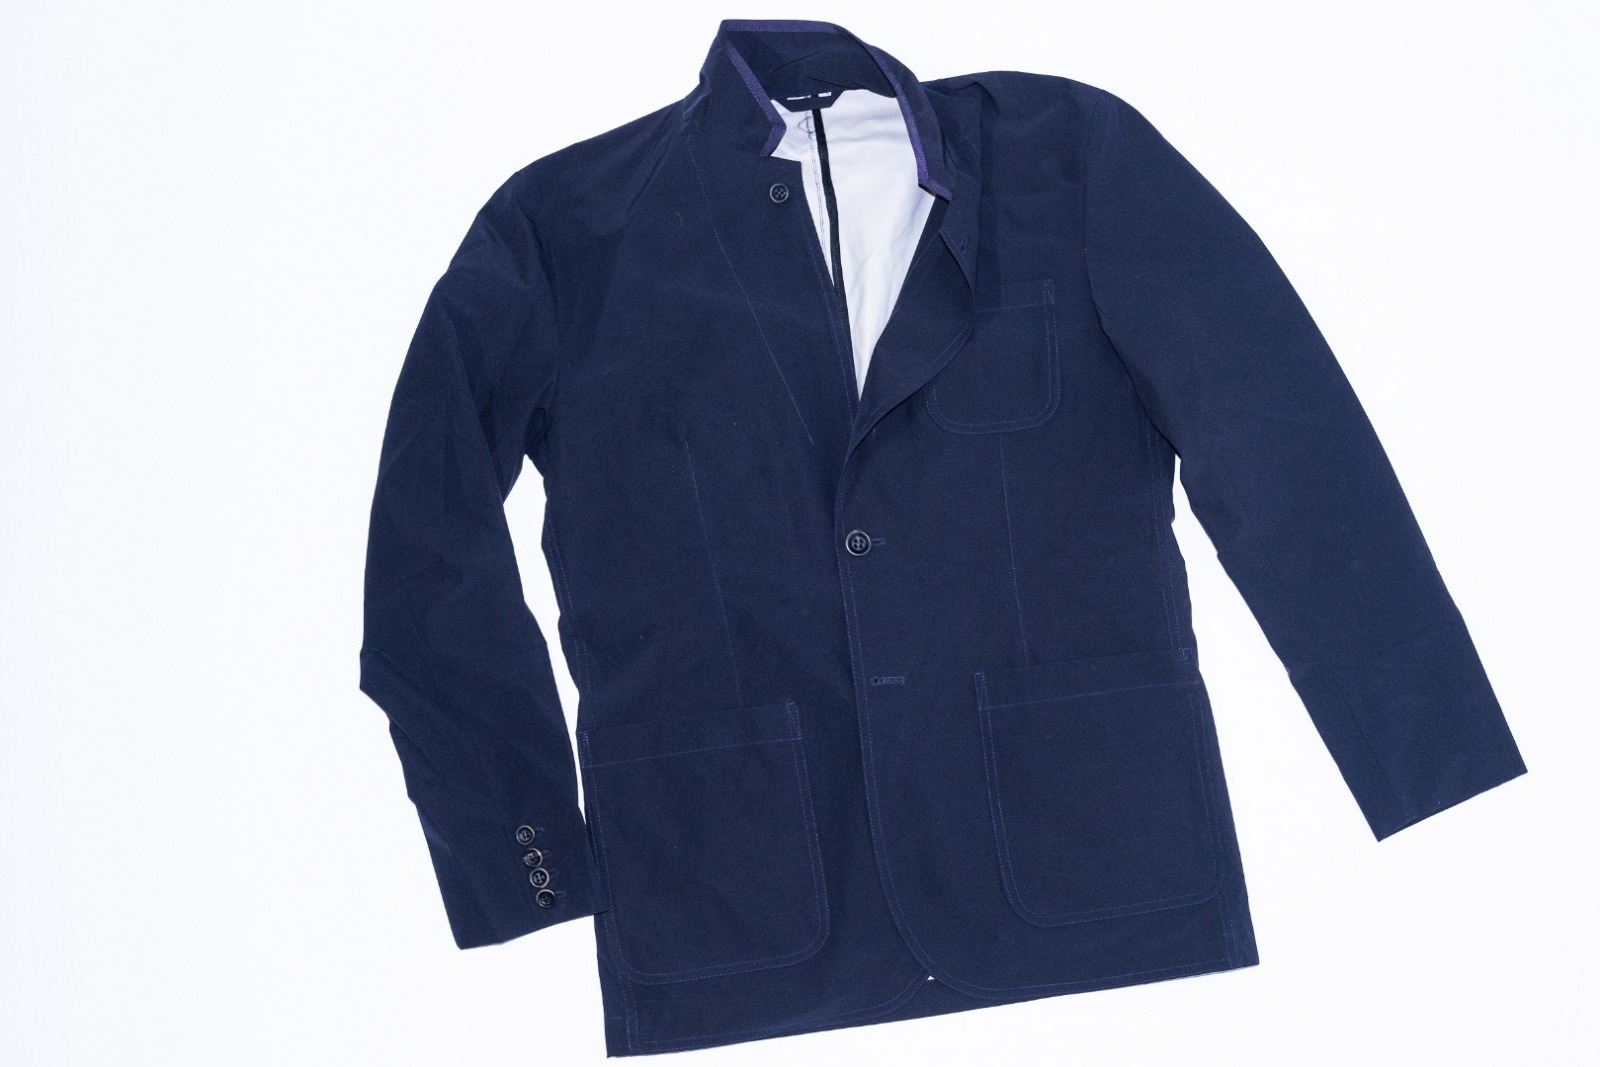 Pocketparachute Blazer - Navy Blue - 1